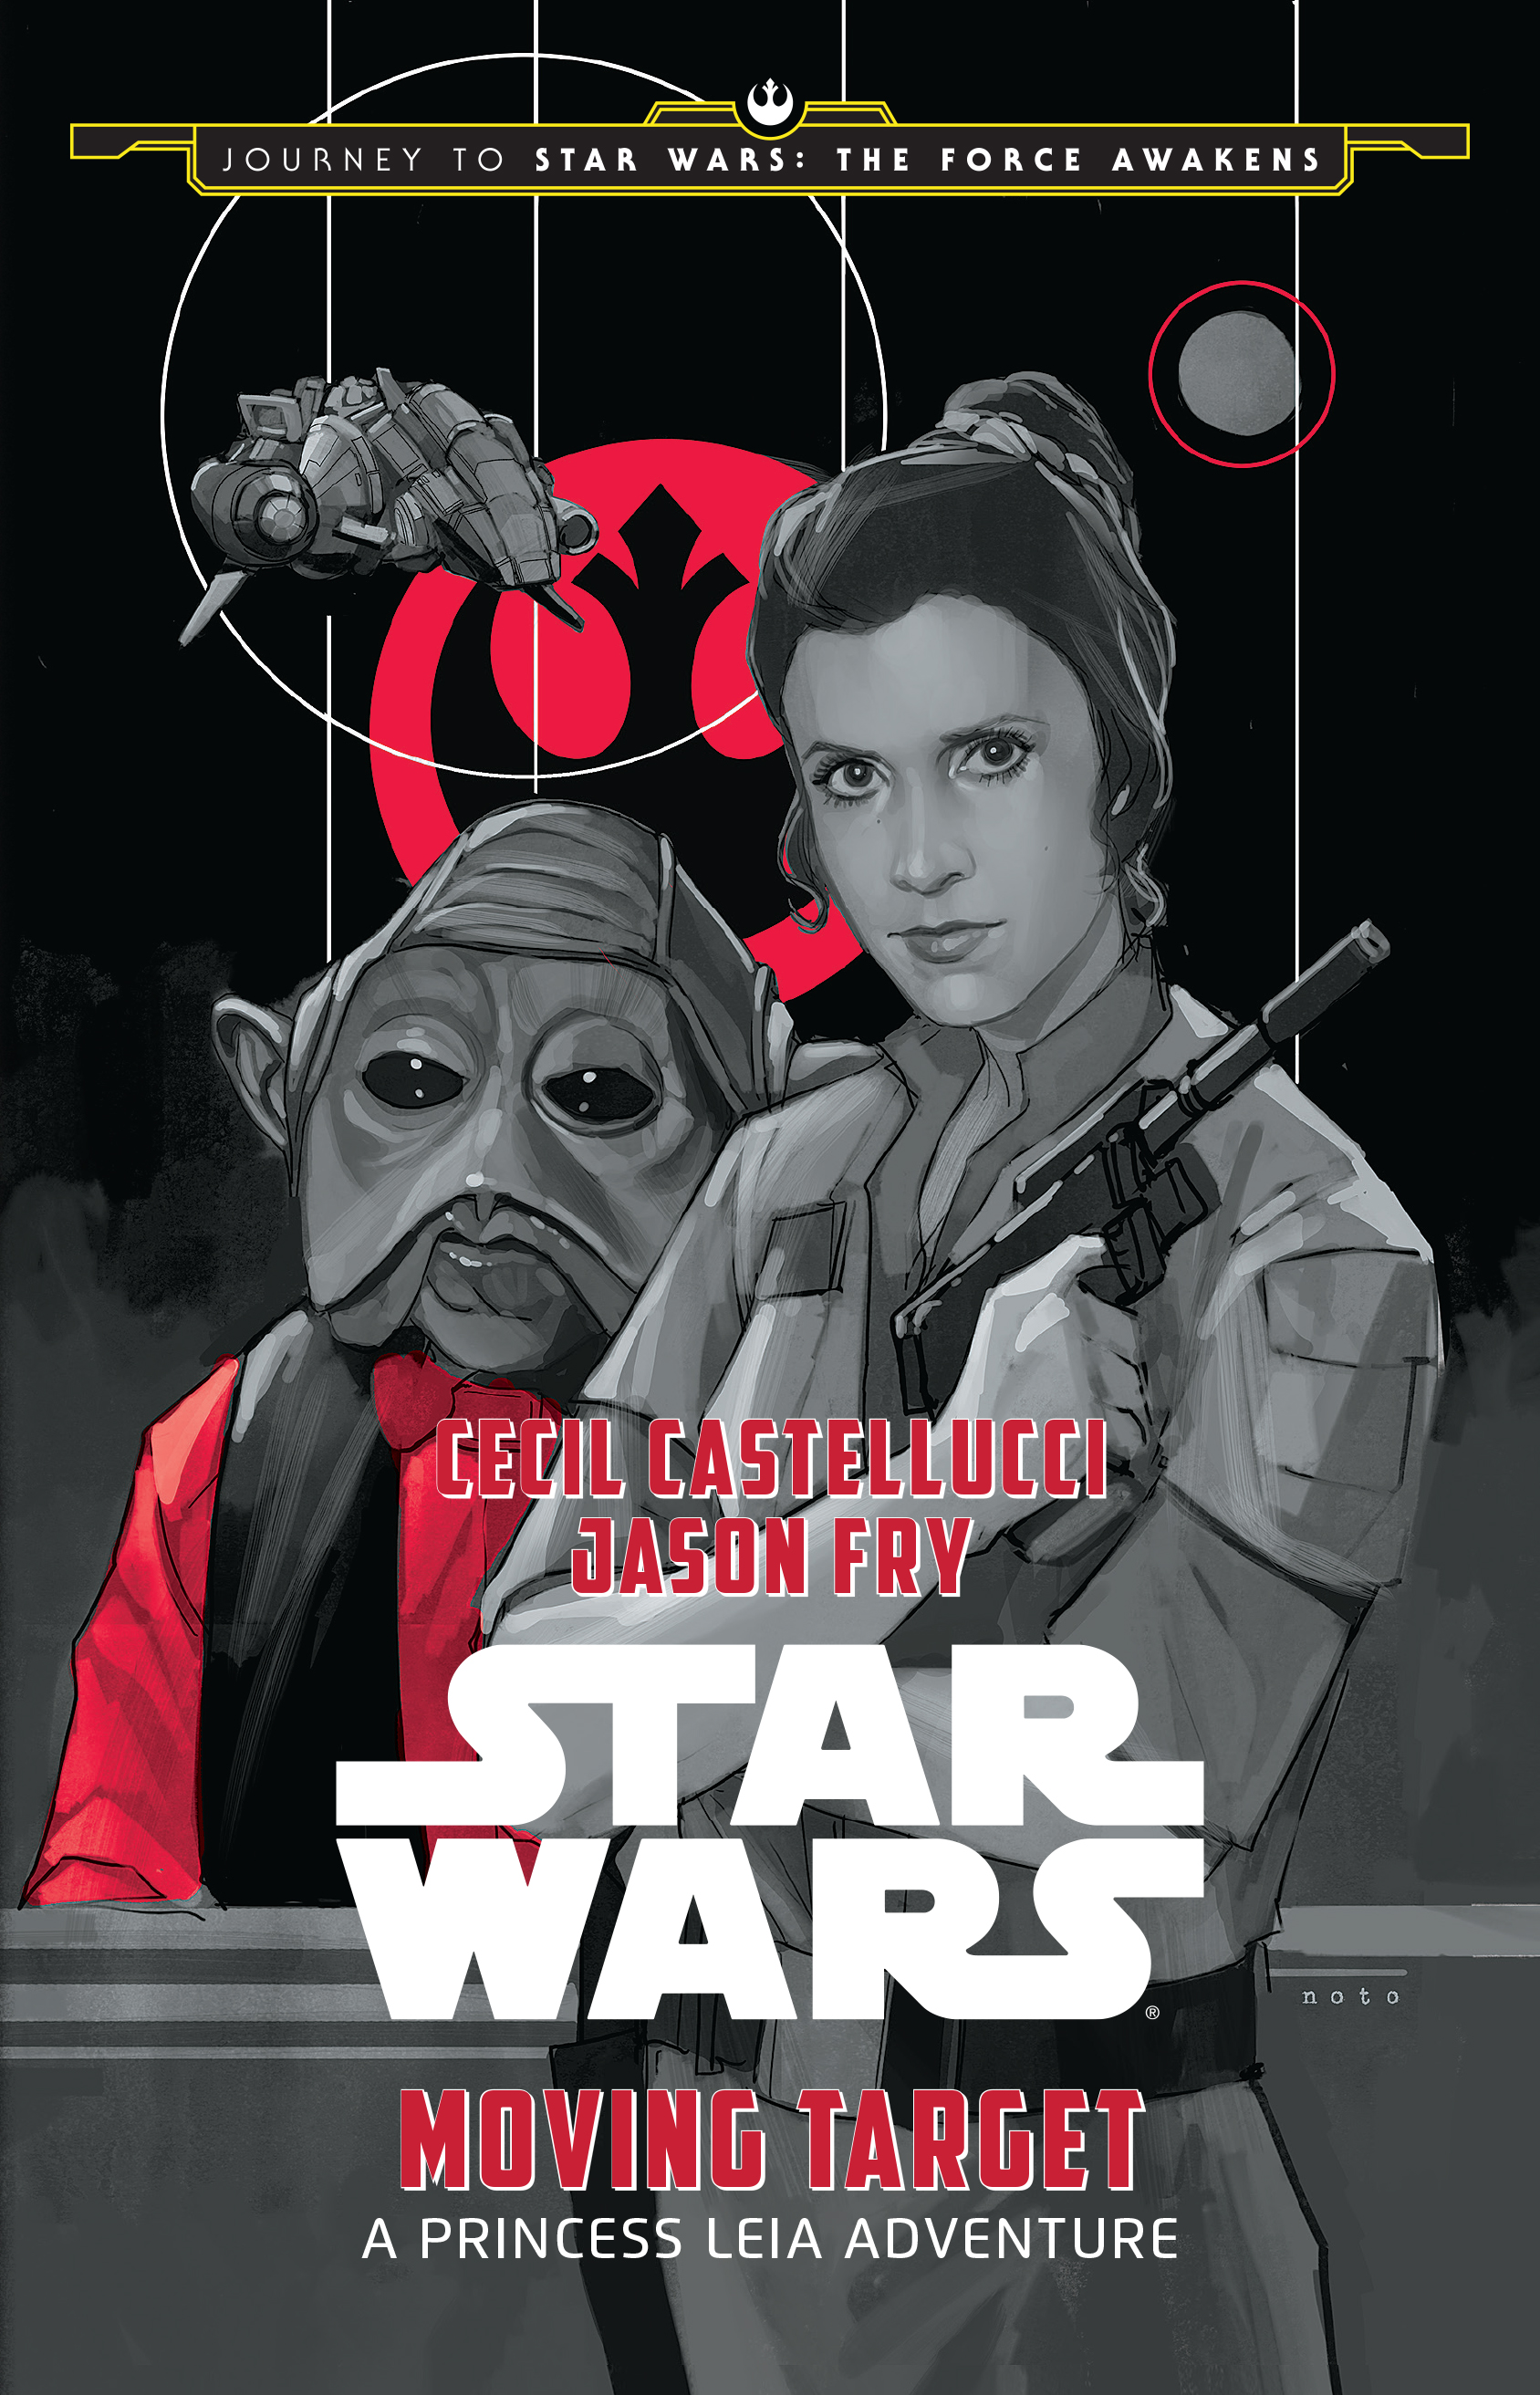 Journey to Star Wars: The Force Awakens: Moving Target A Princess Leia Adventure